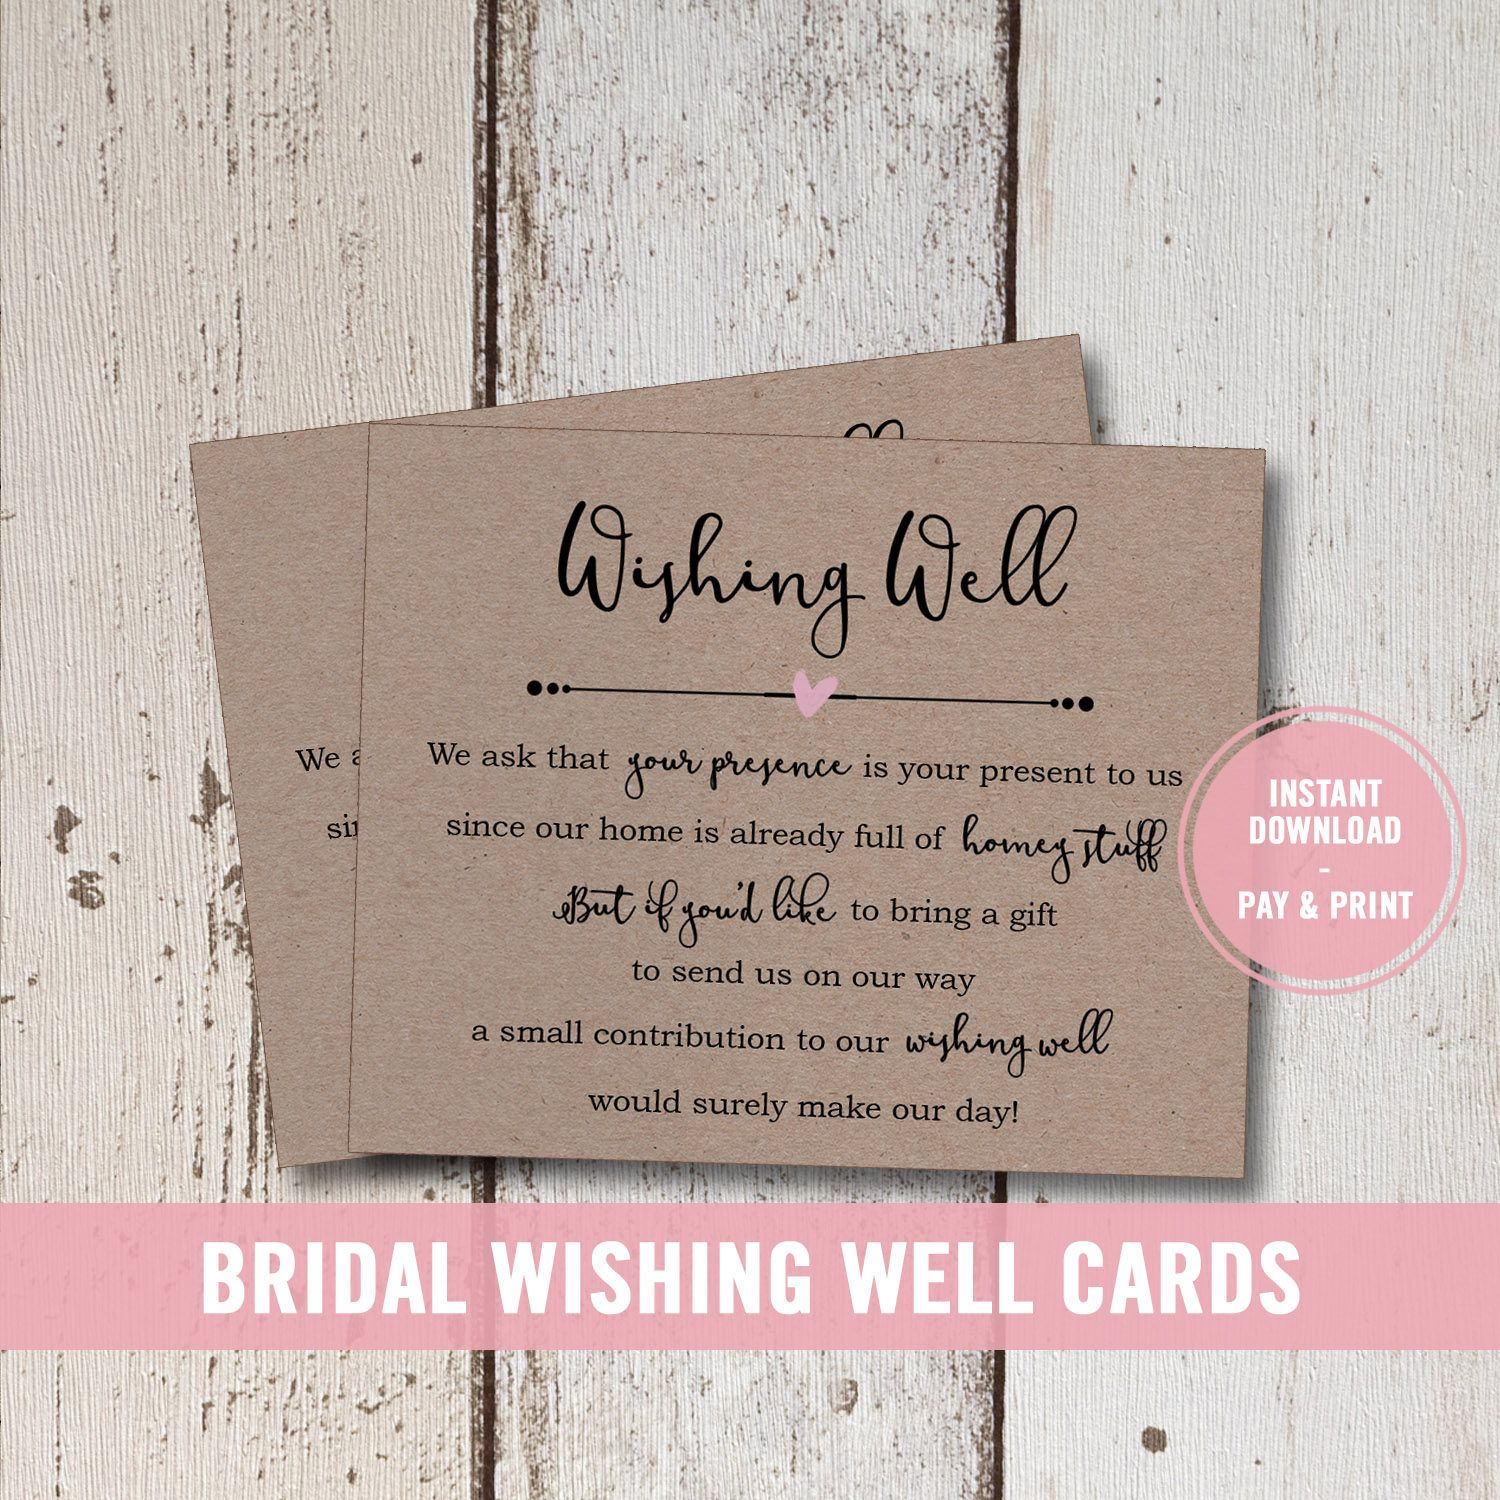 Wedding Wishing Well Card Printable, Bridal Shower Wishing Well Insert,  Instant Download Wishing Well Poem, Rustic Bridal Shower Registry by  ShadesOfGrace1 ...